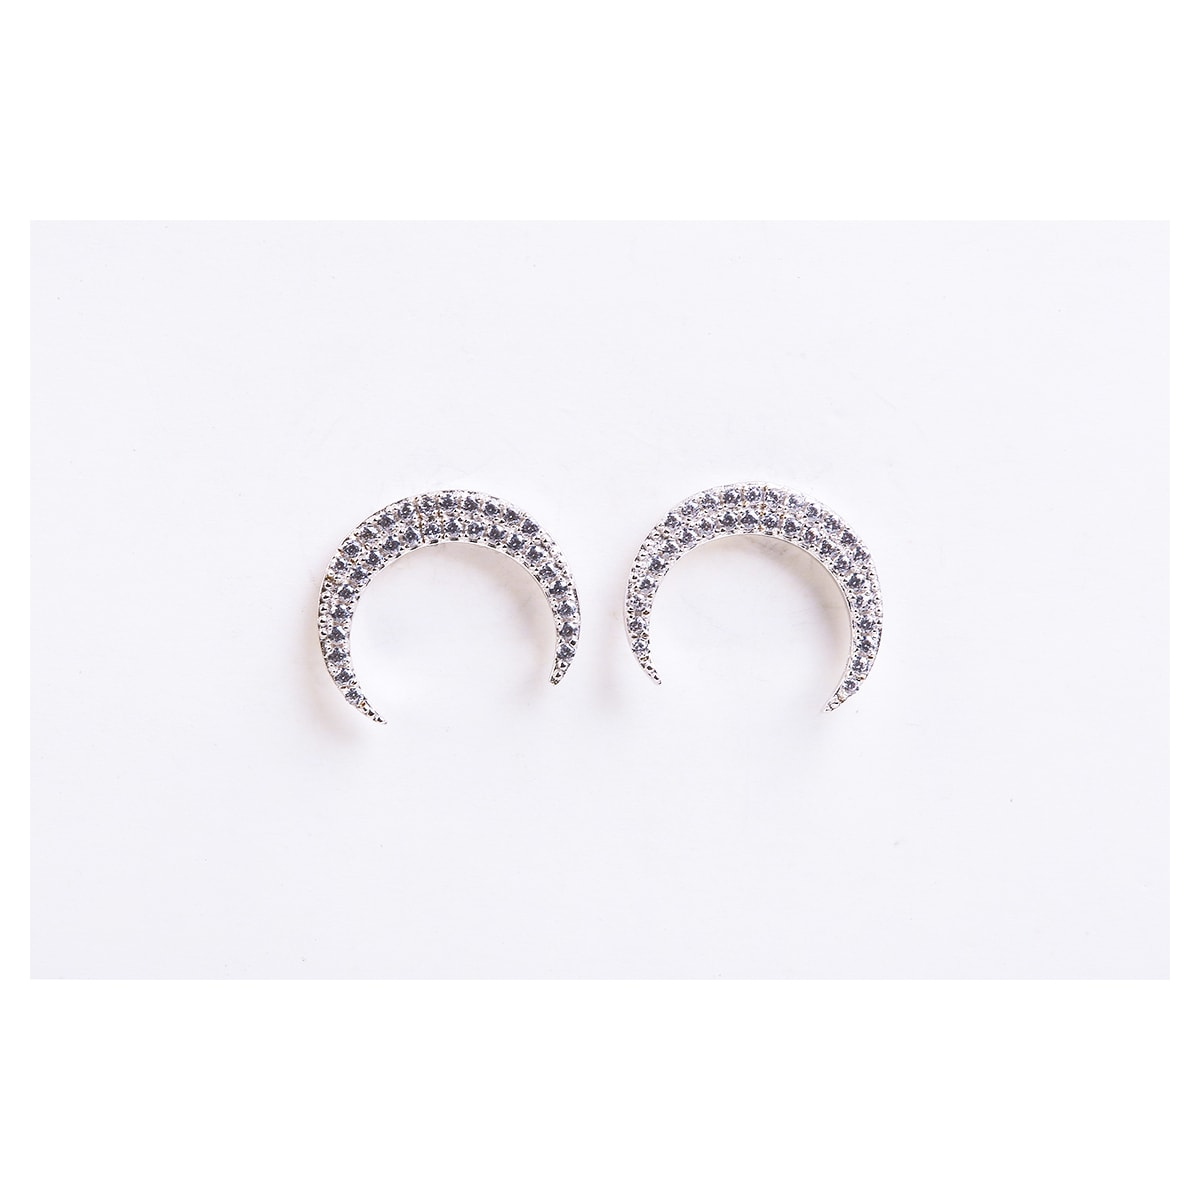 Yamibuy.com:Customer reviews:Ariel Sterling Silver New Moon Earrings